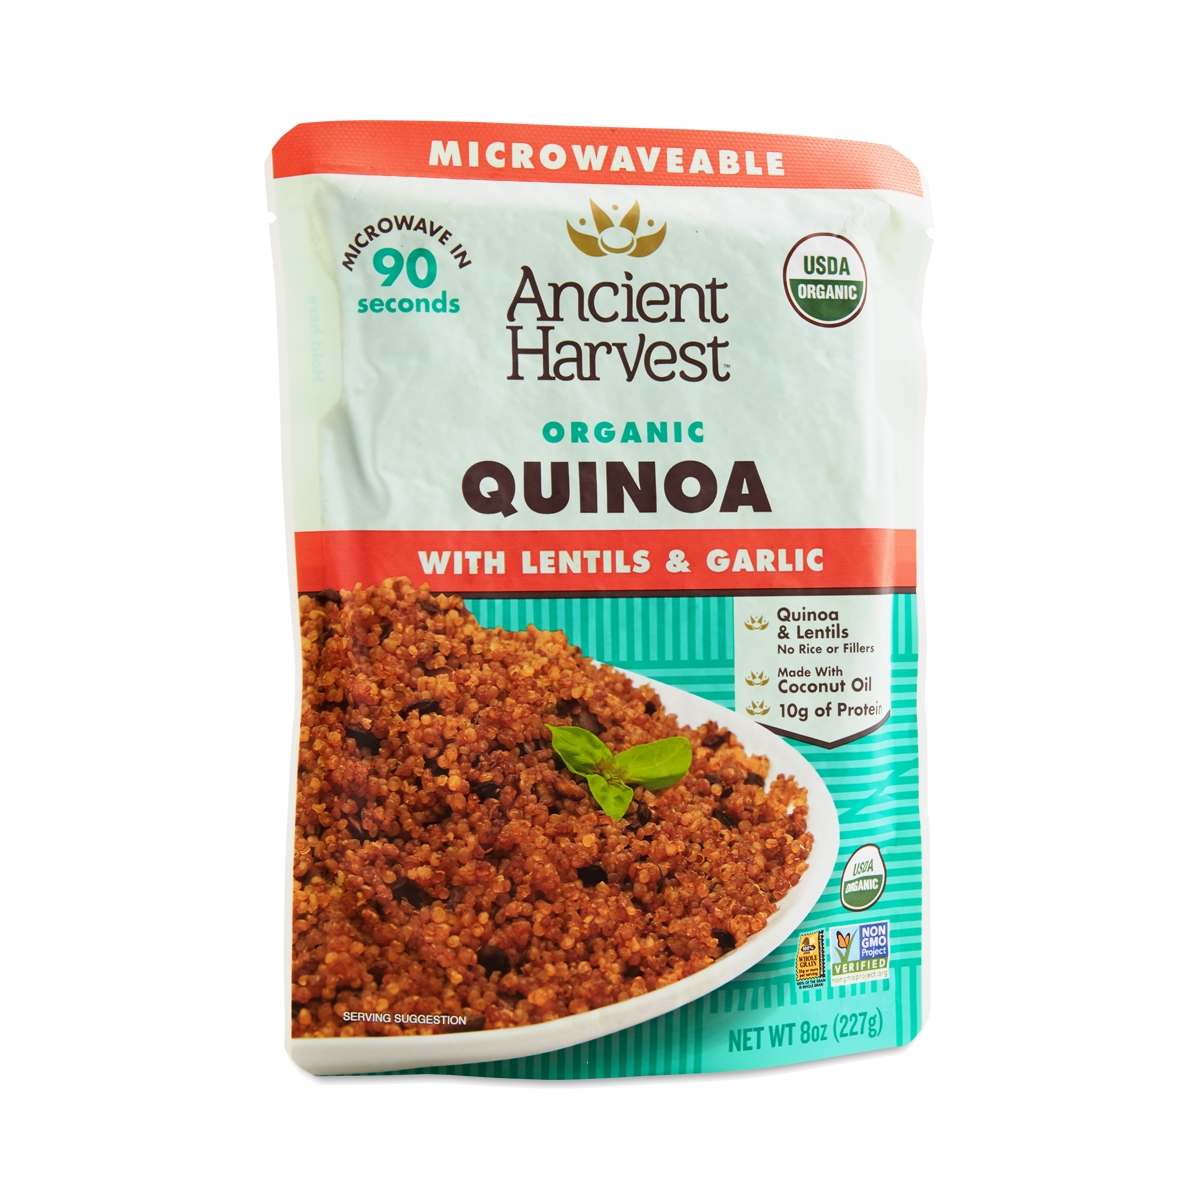 Ancient harvest quinoa pasta ingredients